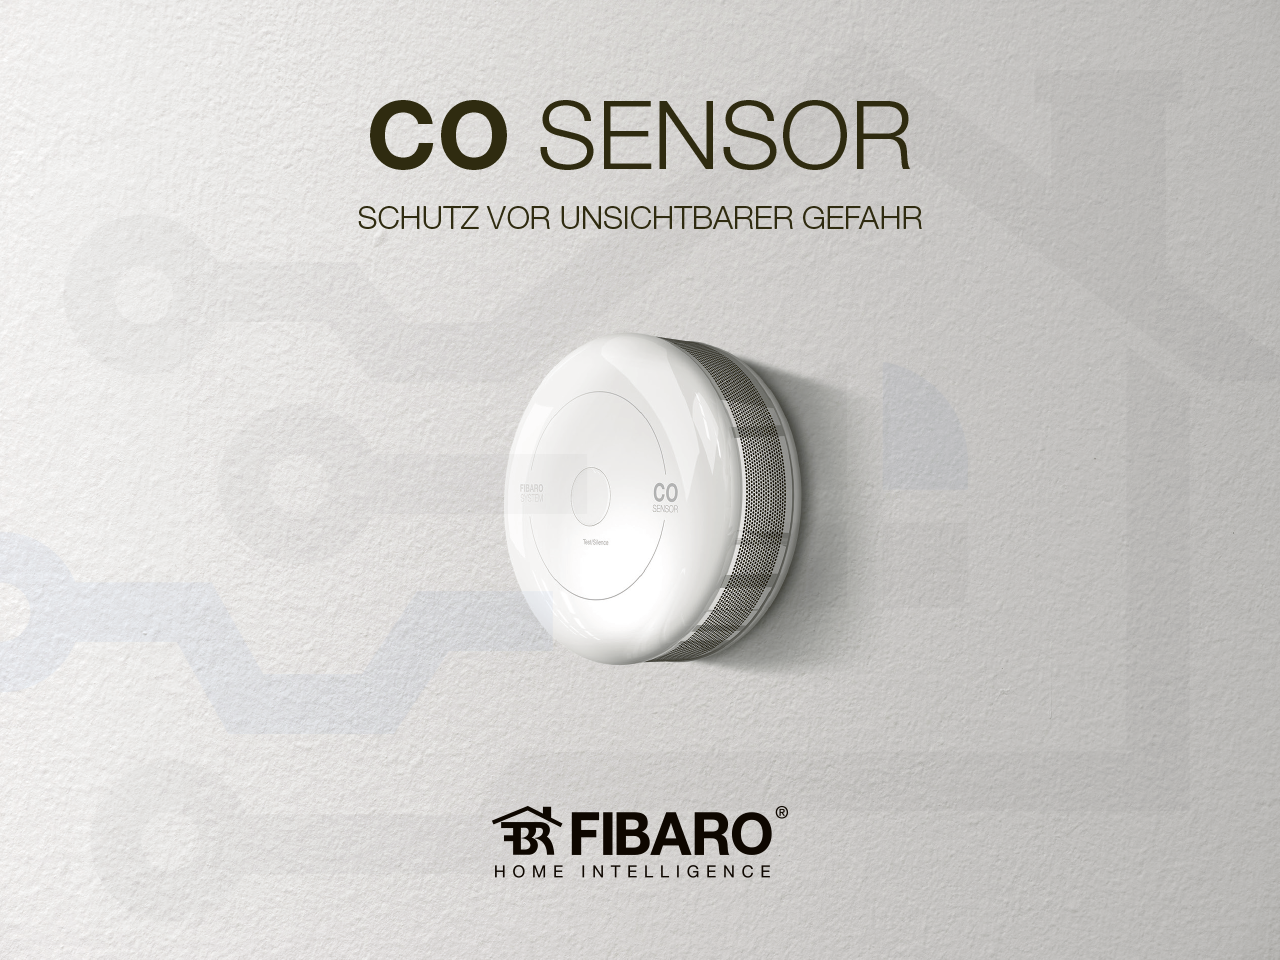 Pr-sentation_FIBARO_CO-Sensor_ottosystem-1